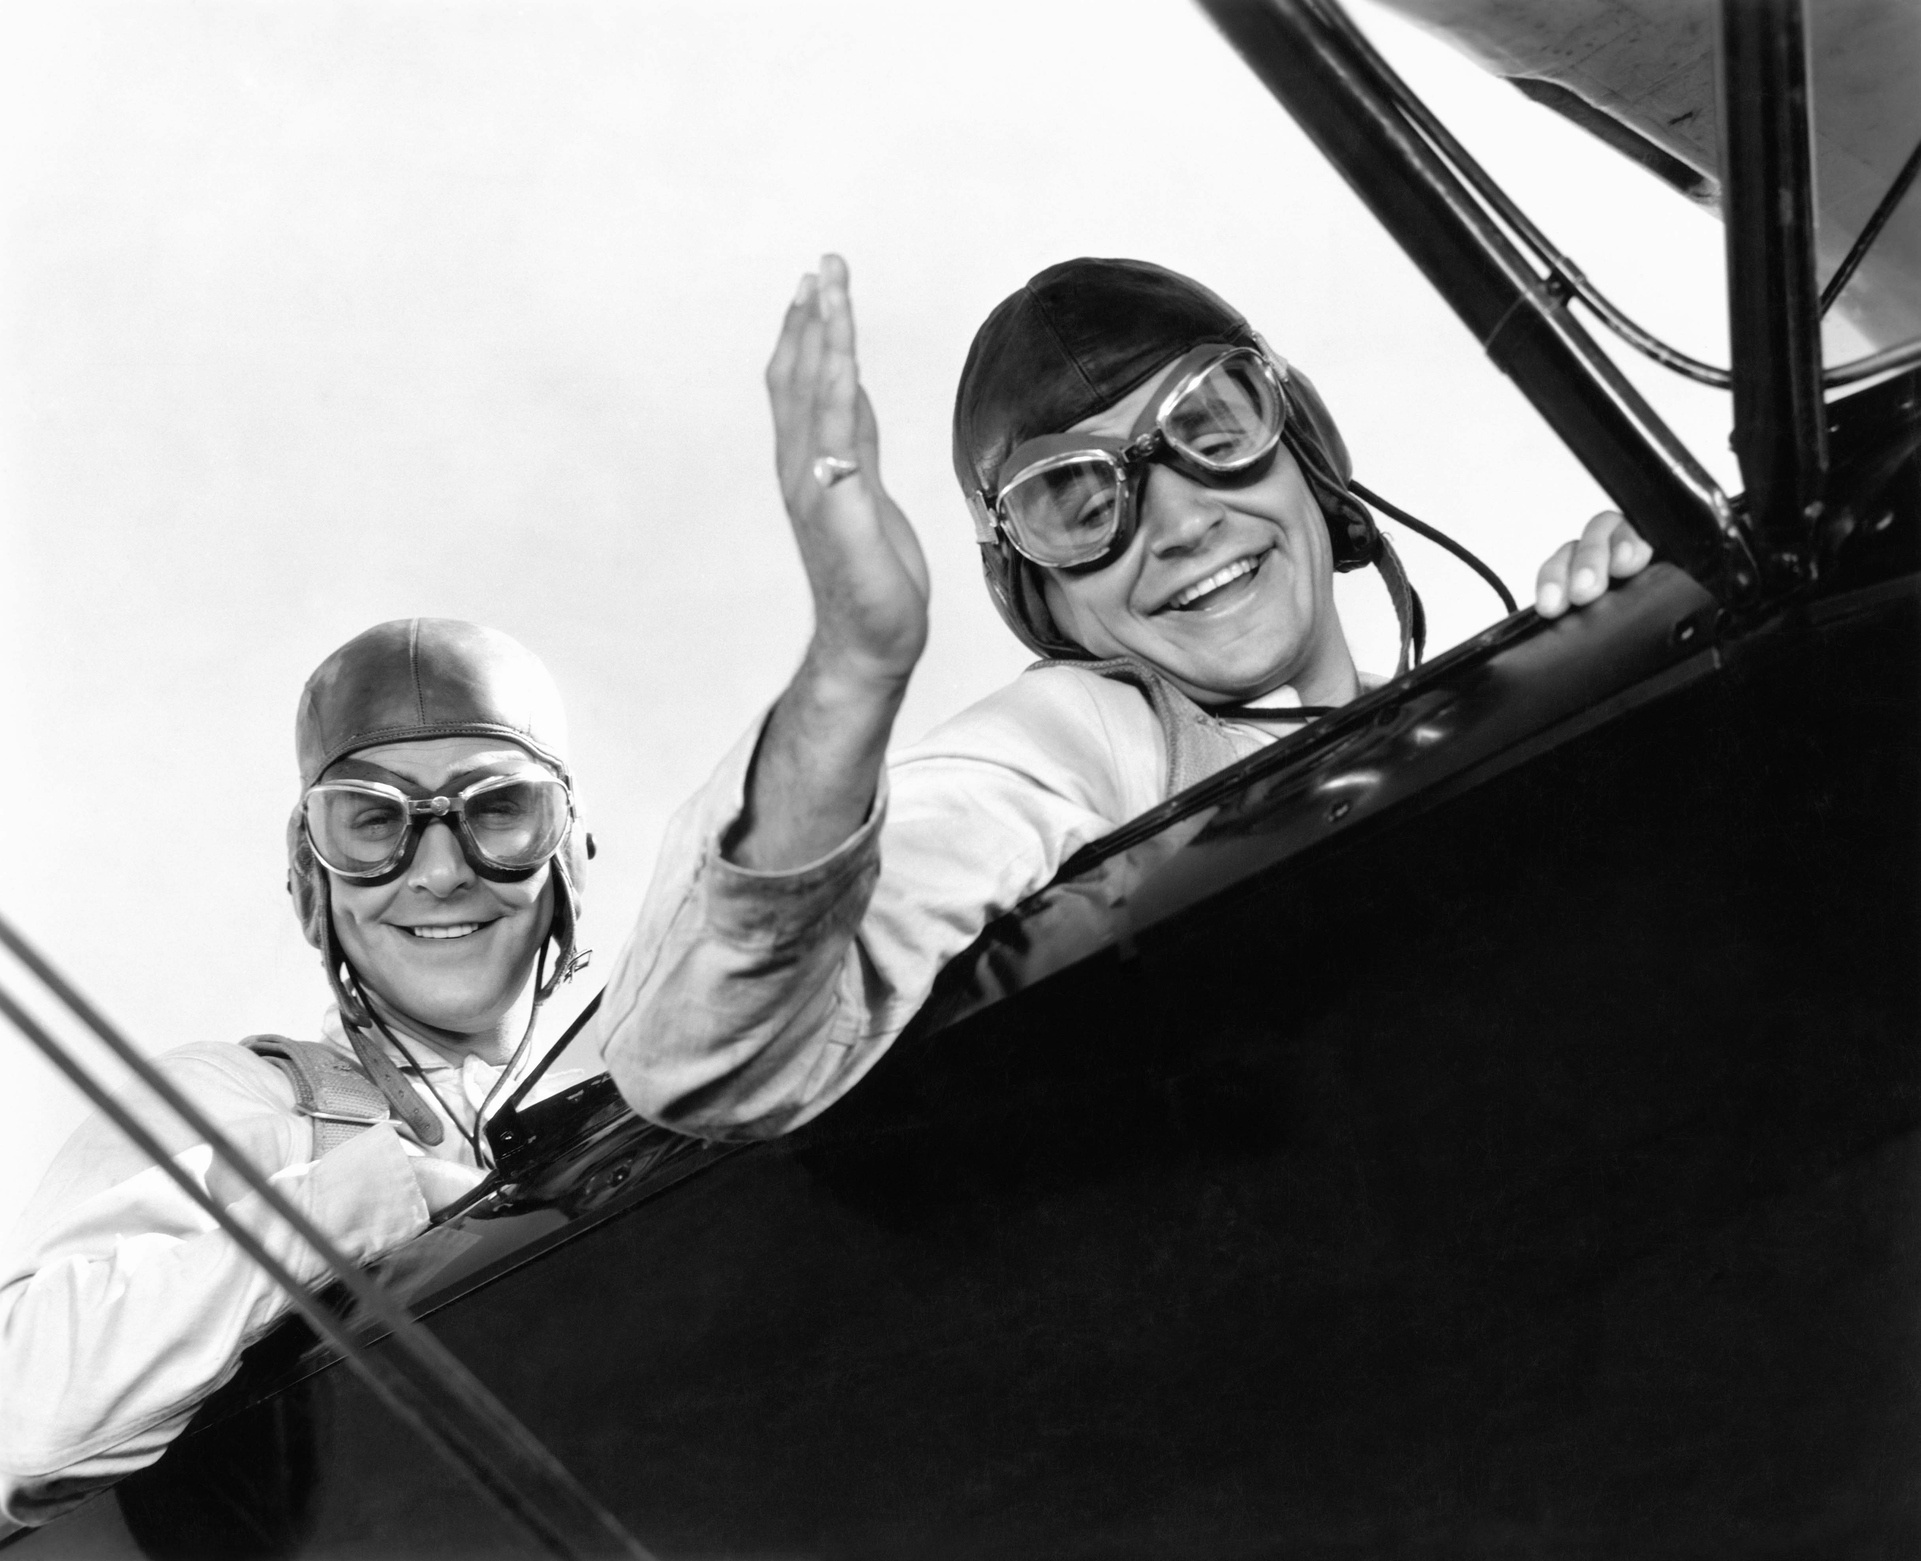 Two pilots in a vintage airplane